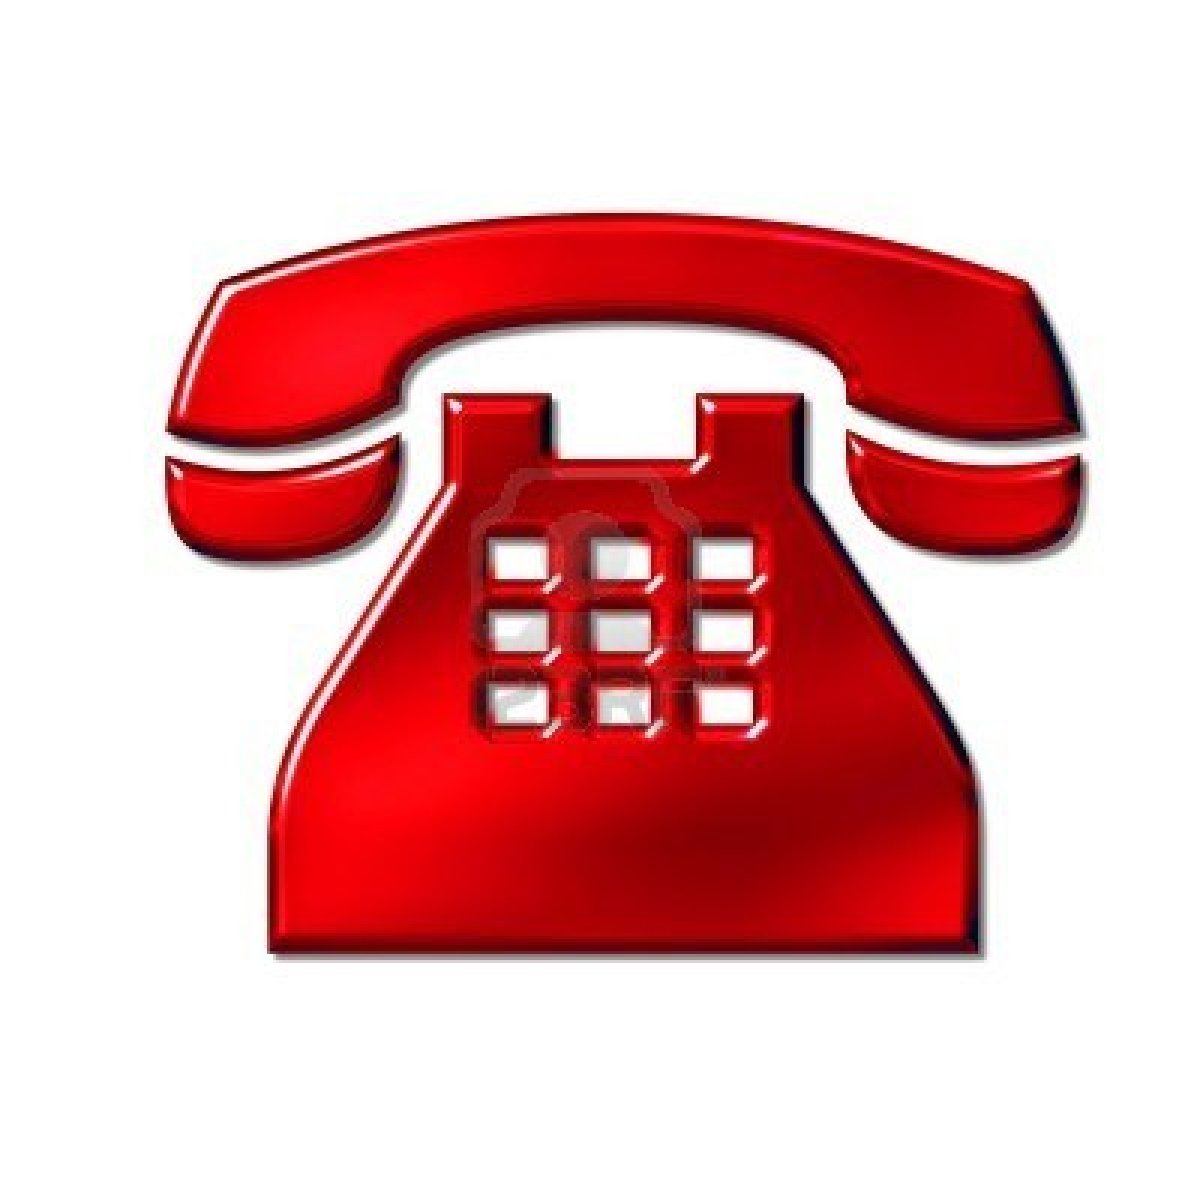 http://garra.iar.unlp.edu.ar/images/5294639-3d-red-phone-icon-sign-on-white.jpg